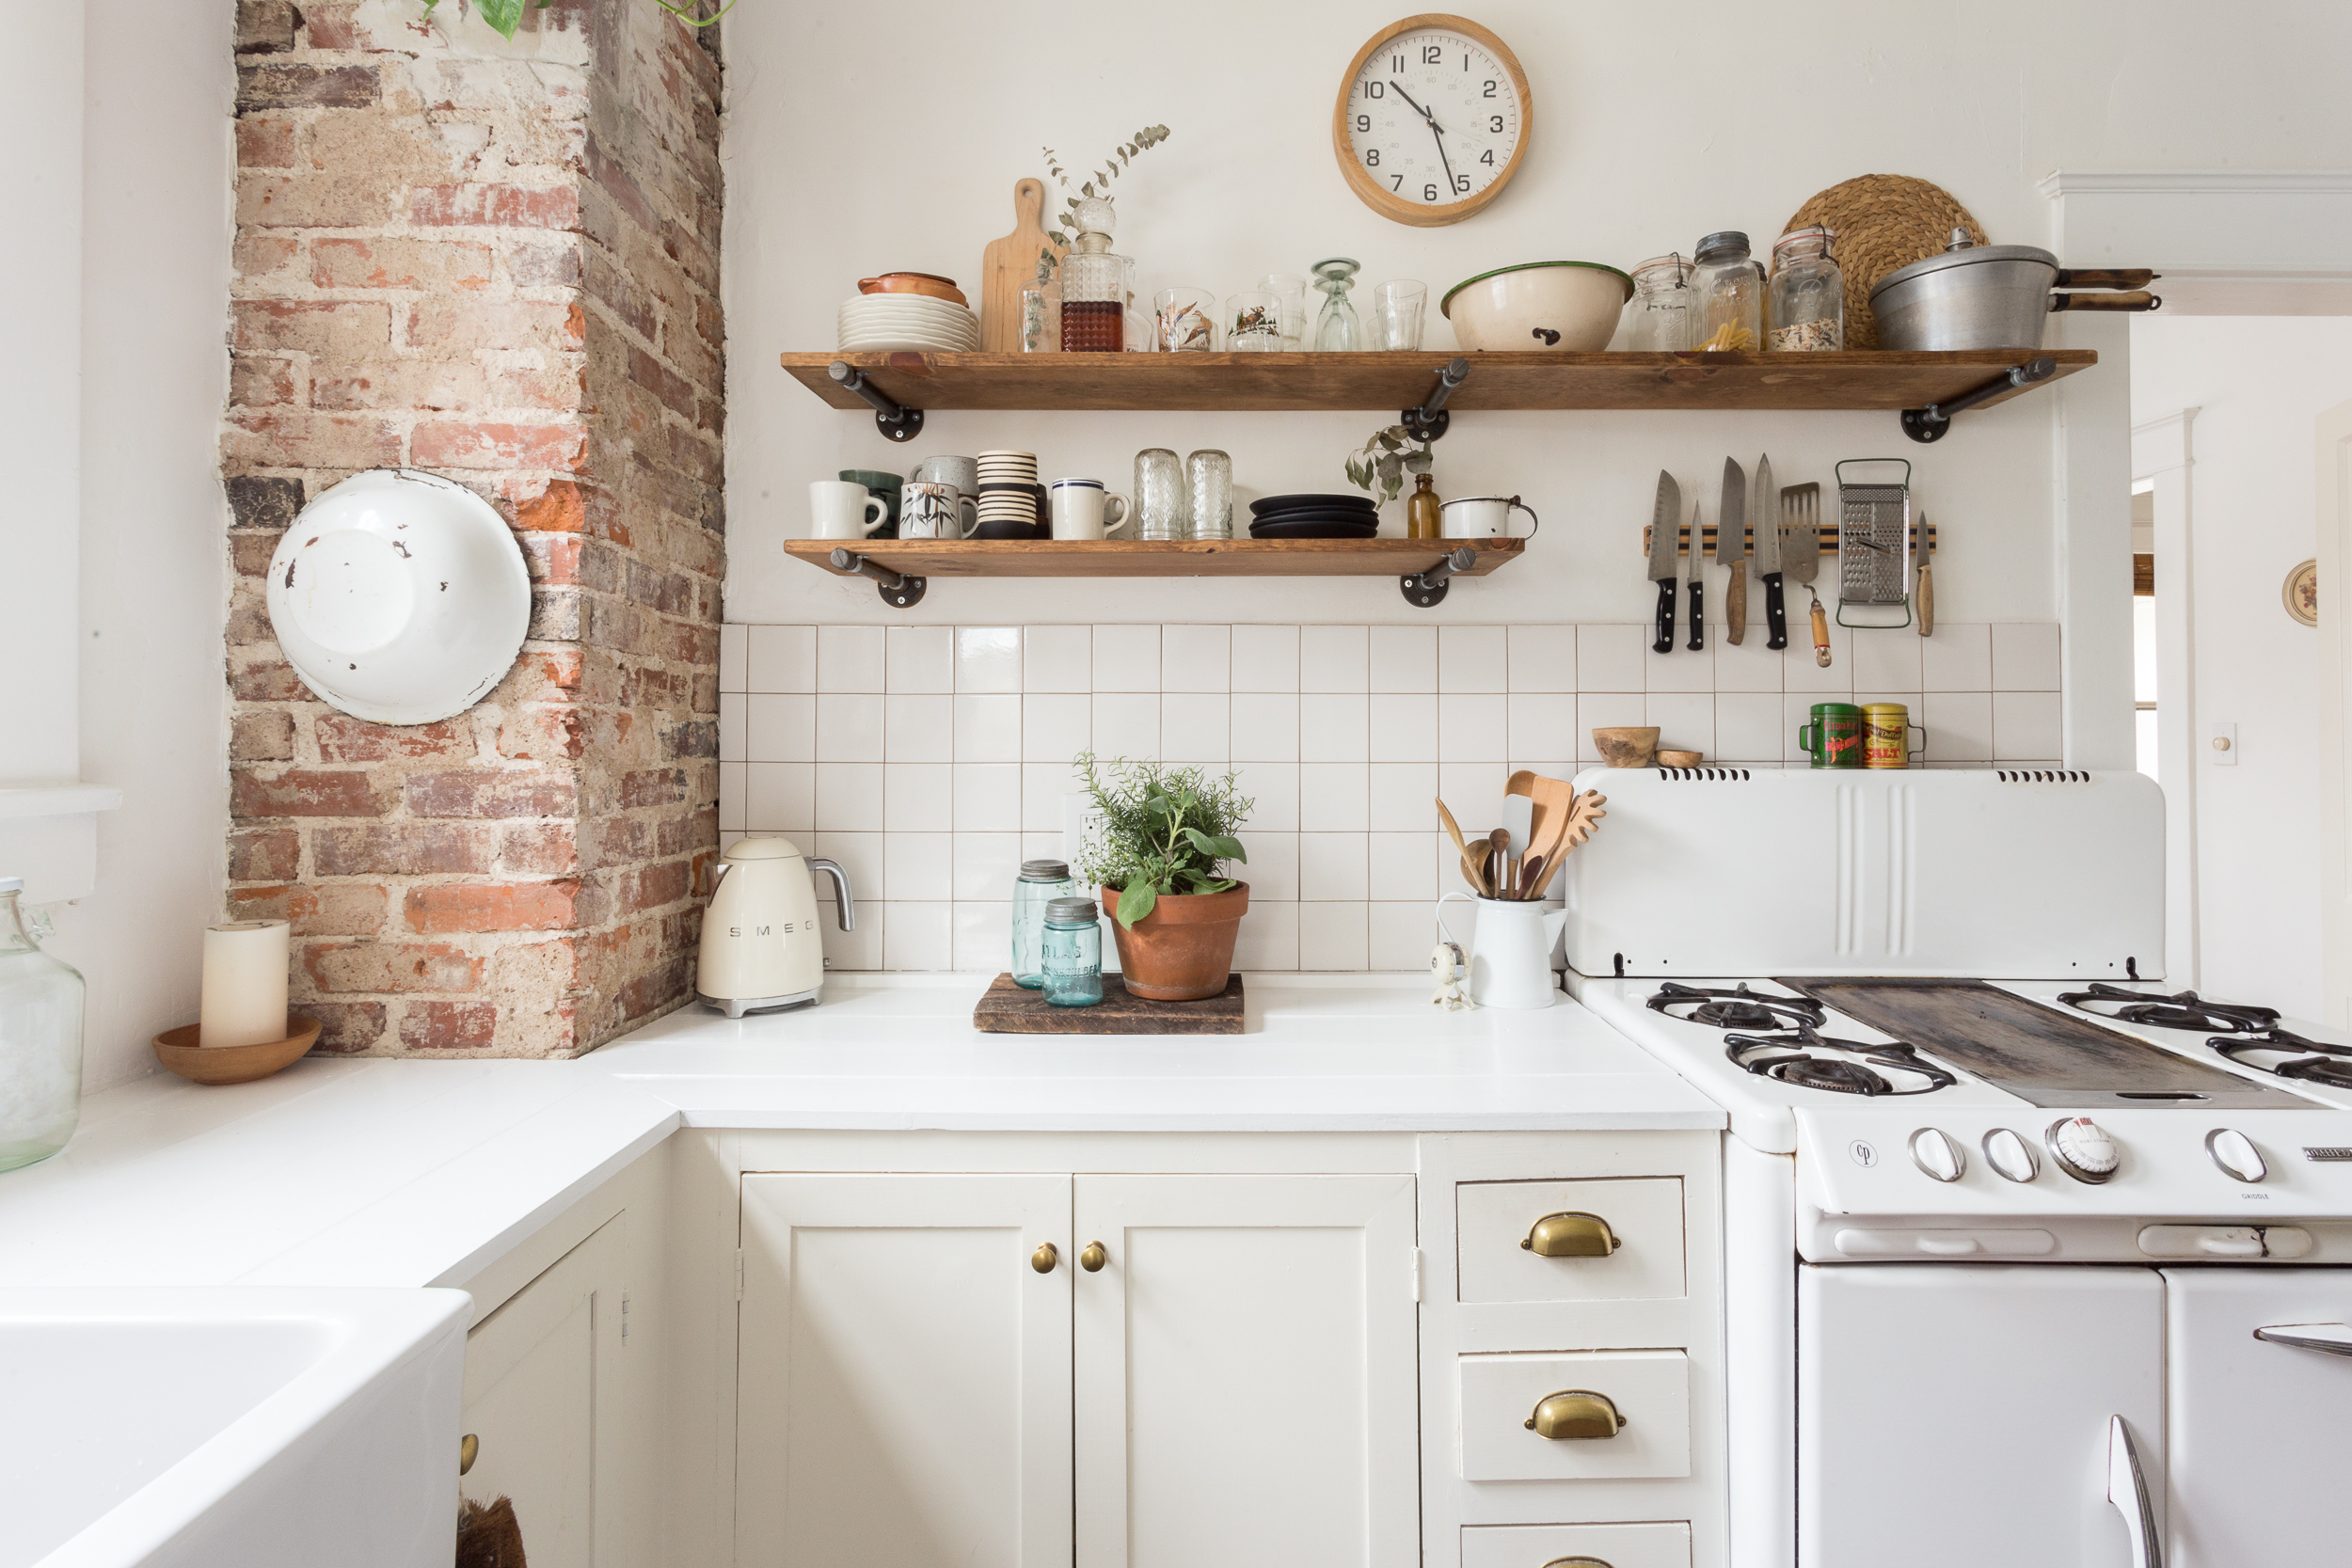 Hasil gambar untuk Making the Most of the Cabinets in Your Home's Kitchen